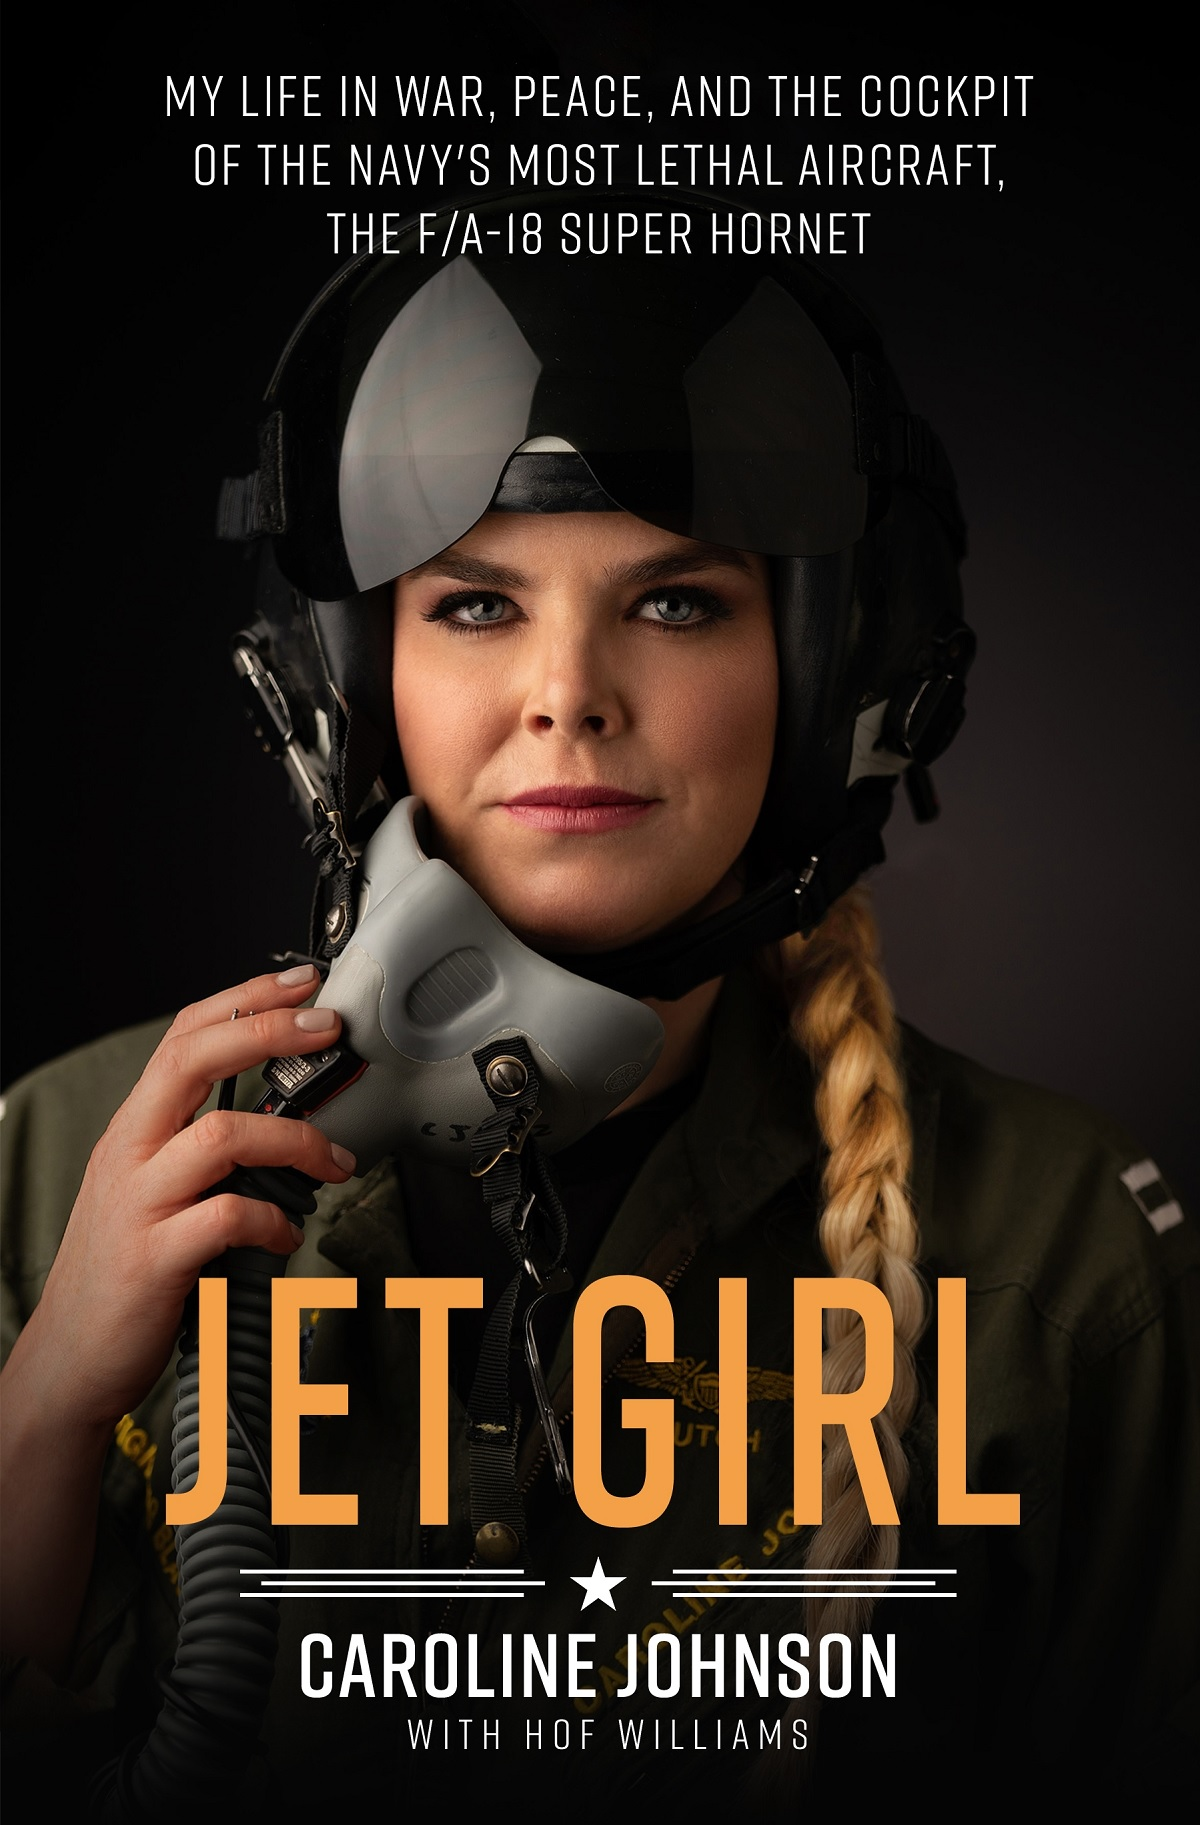 Jet Girl: the Story of Caroline Johnson, the First Woman to Bomb ISIS from US Navy's F/A-18 Super Hornet